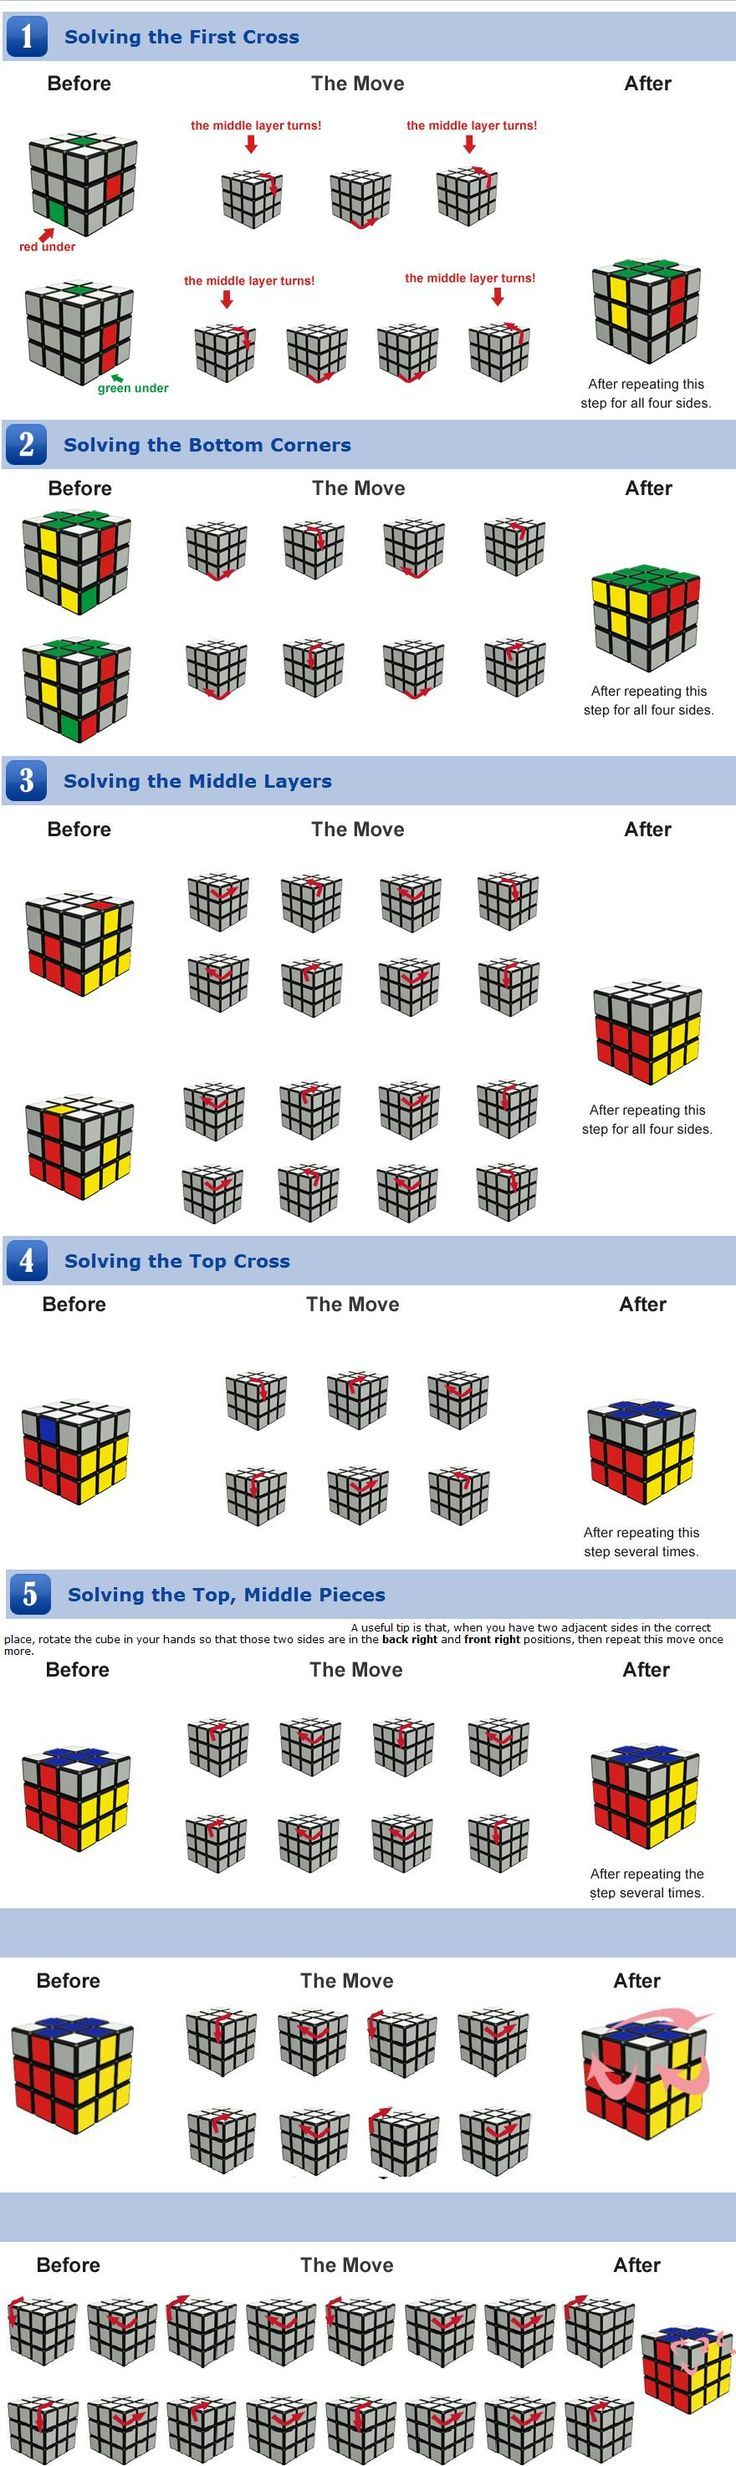 10 Coolest Weird Rubik's Cubes That Are Truly The Stuff Of Legends